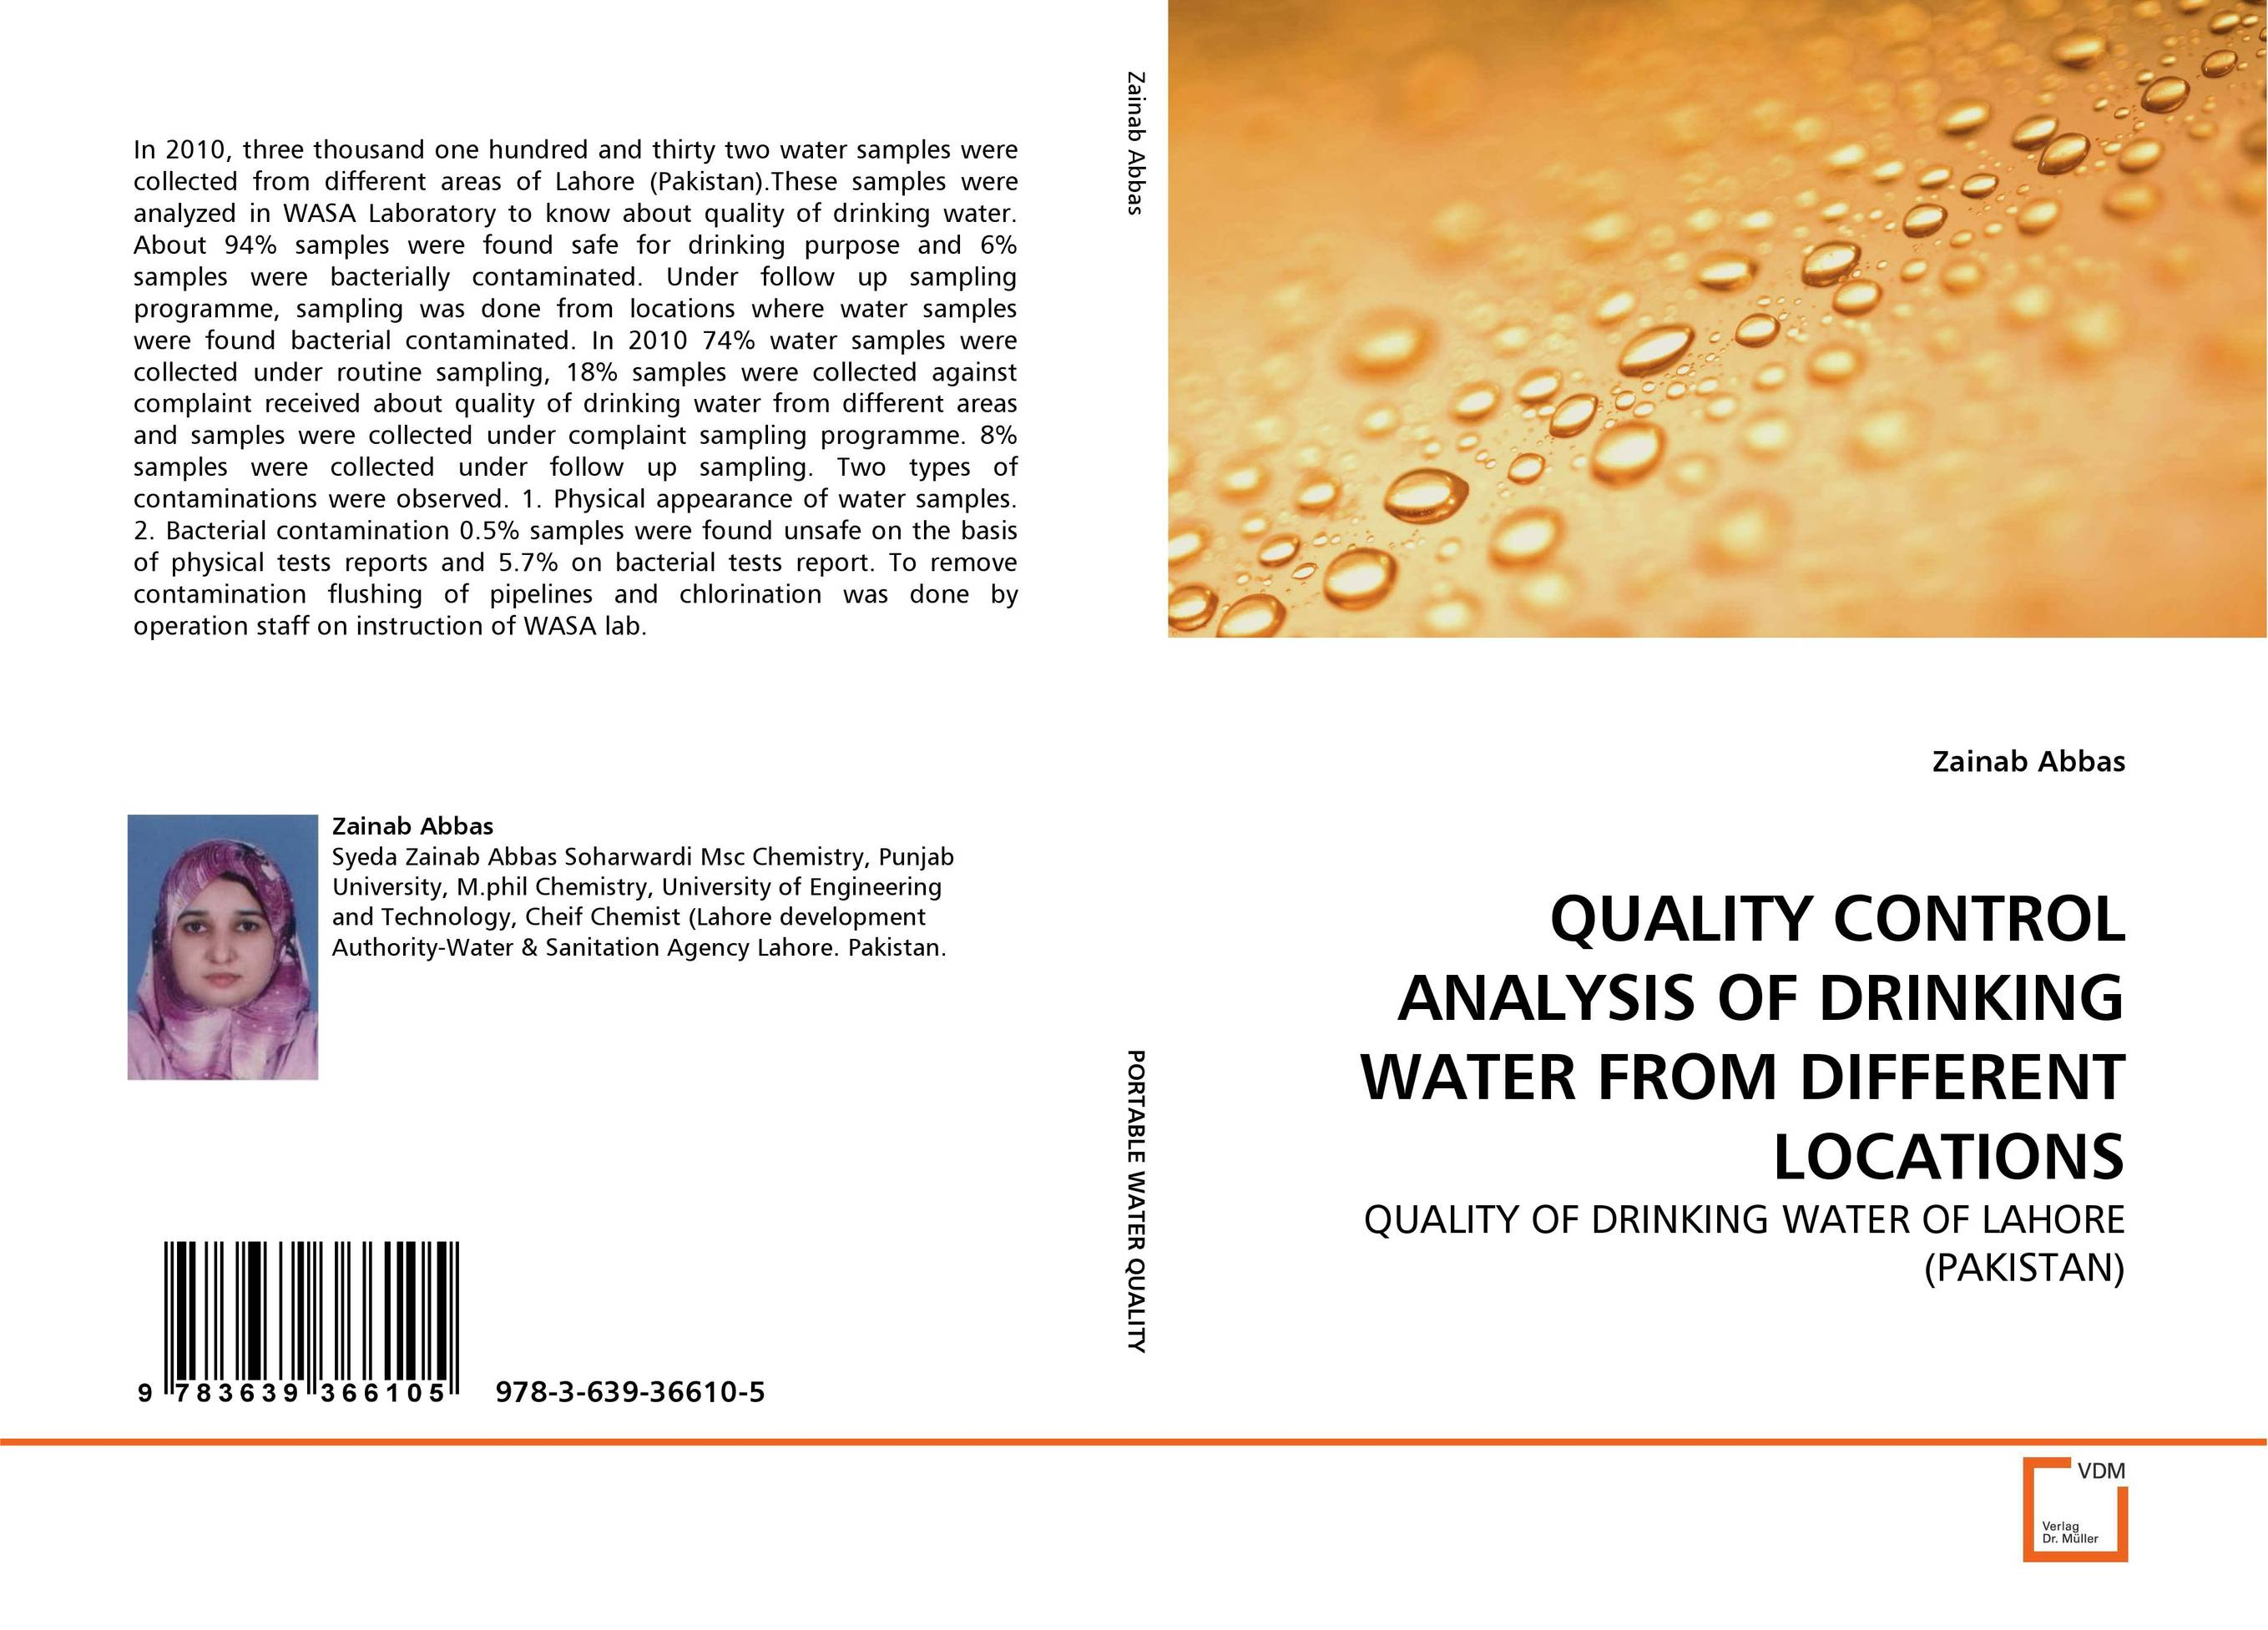 QUALITY CONTROL ANALYSIS OF DRINKING WATER FROM DIFFERENT LOCATIONS handbook of quality control tests for sterile products